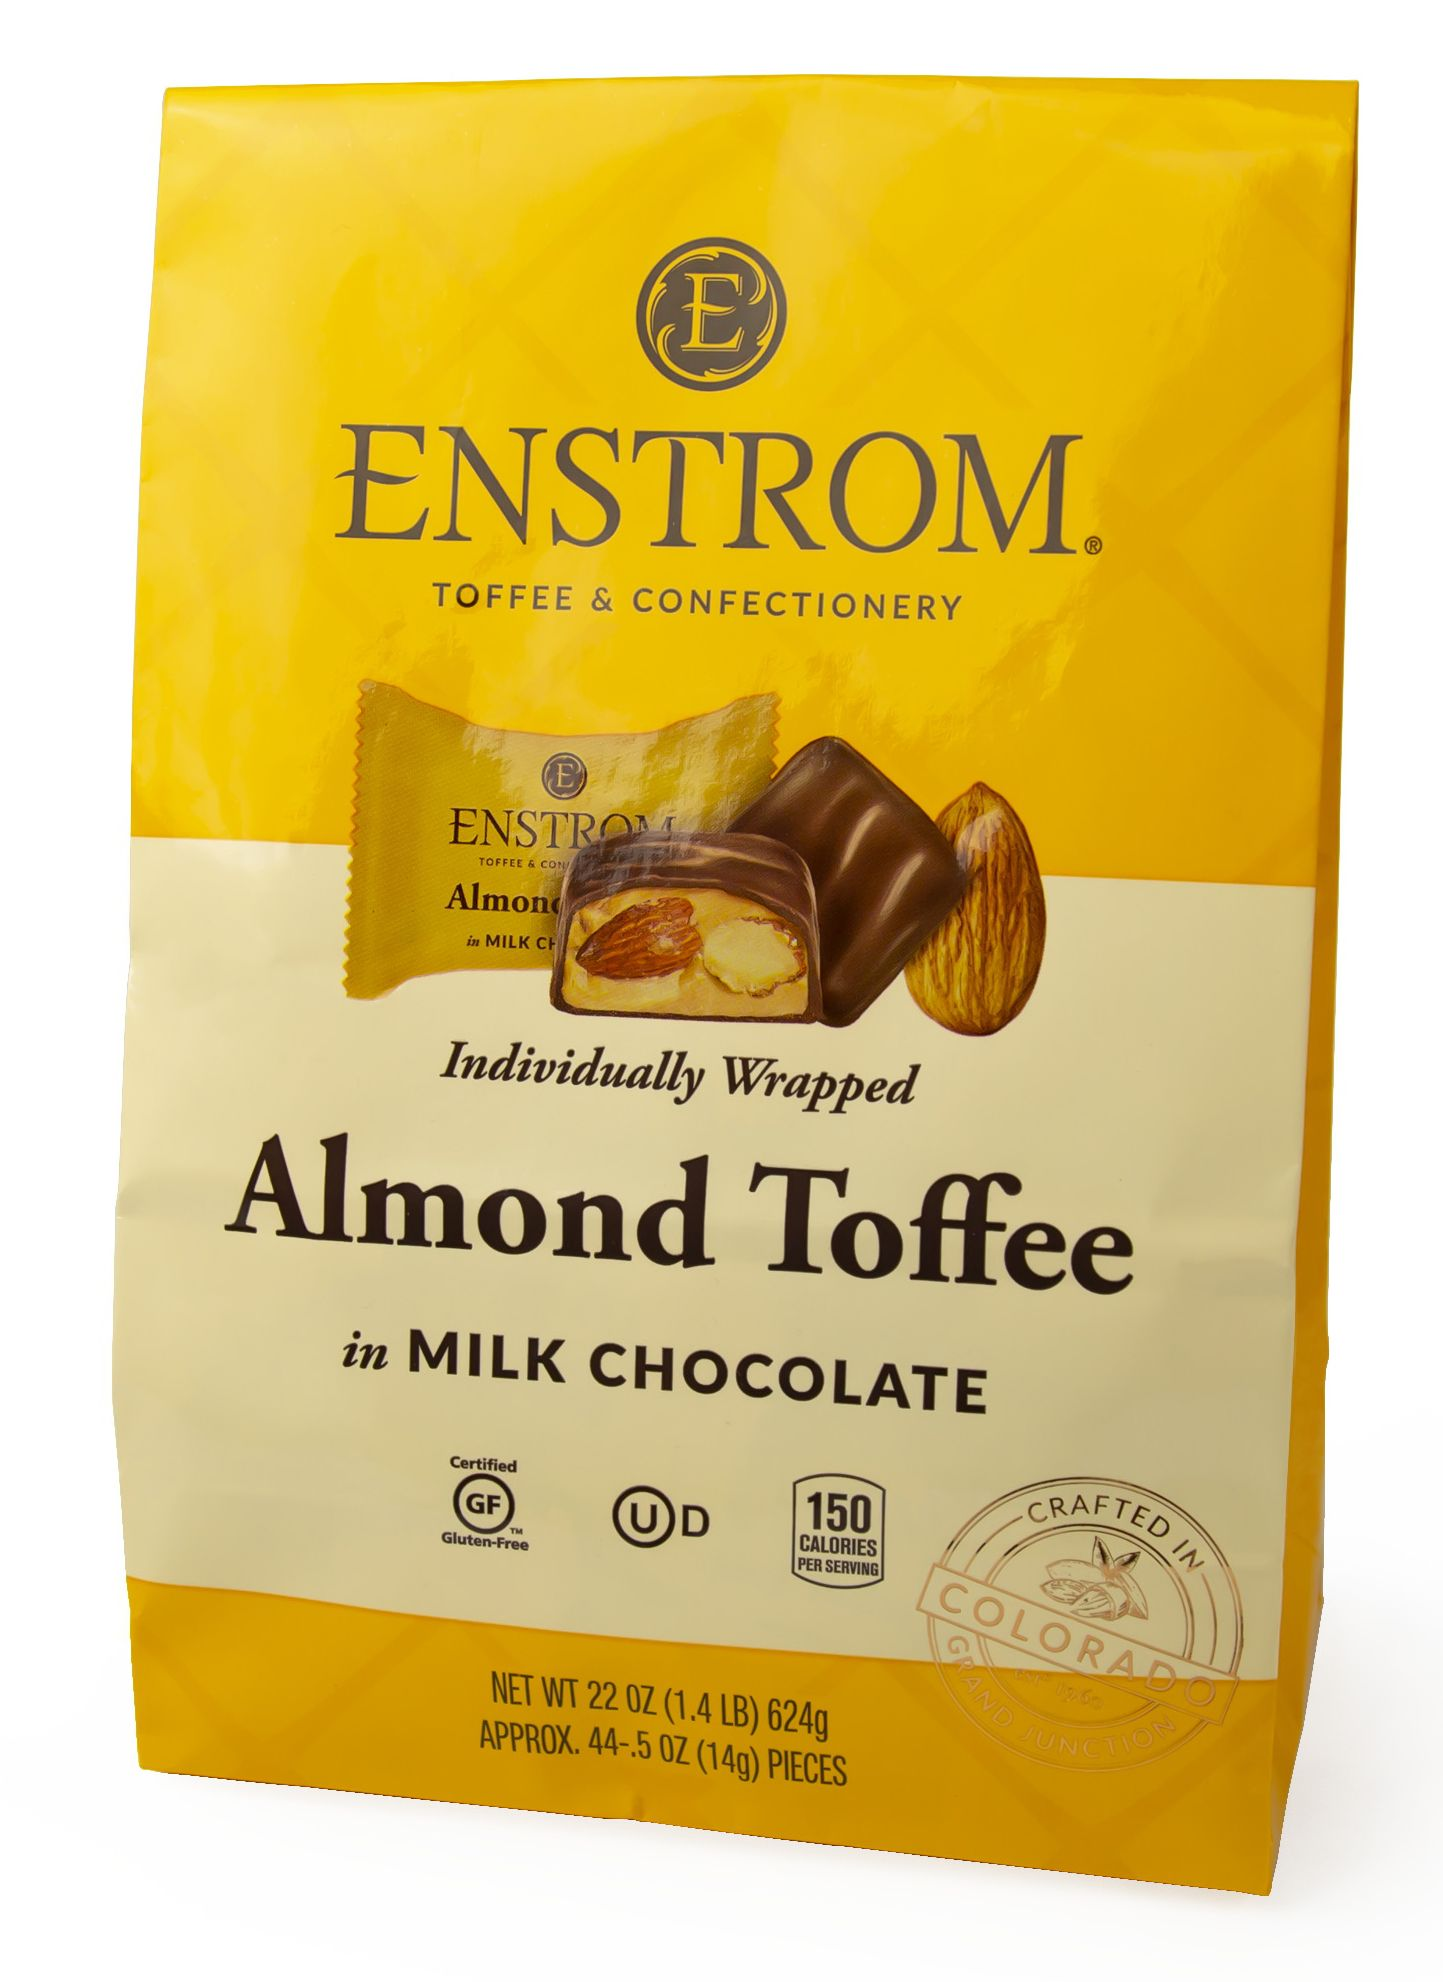 enstrom toffee coupons